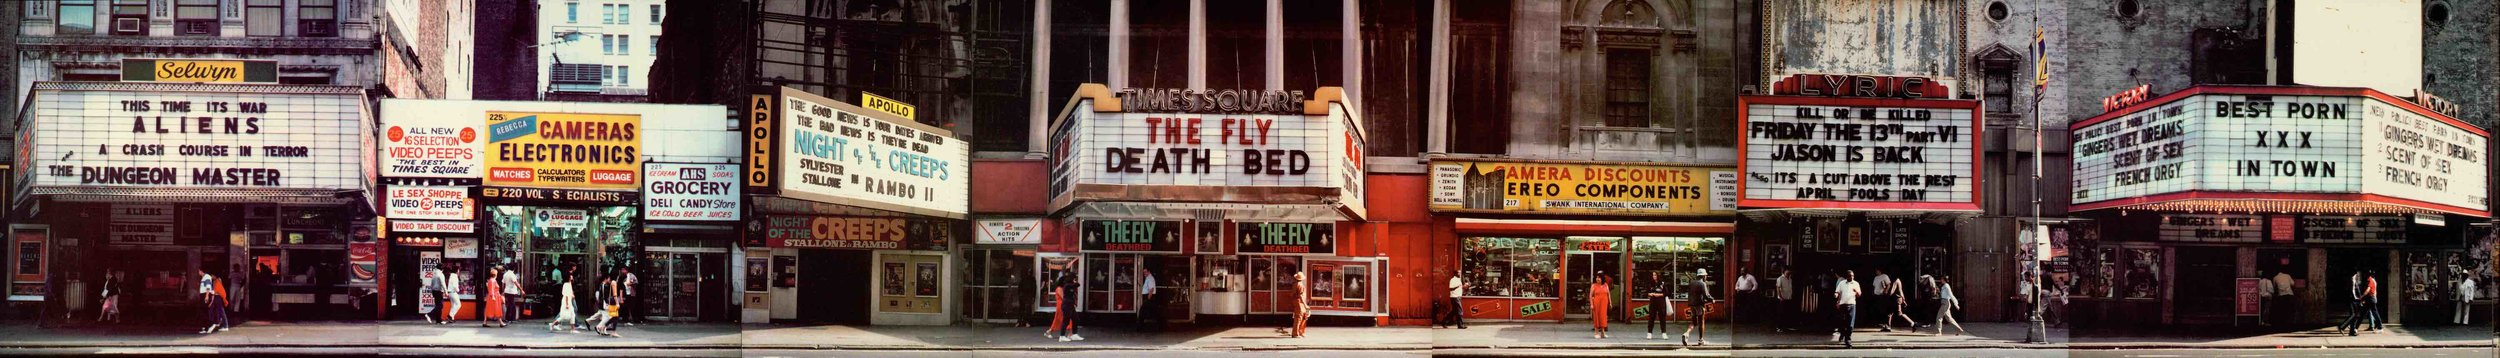 42nd Street with the Times Square Theater front and center, 1987. Photo: Battman.